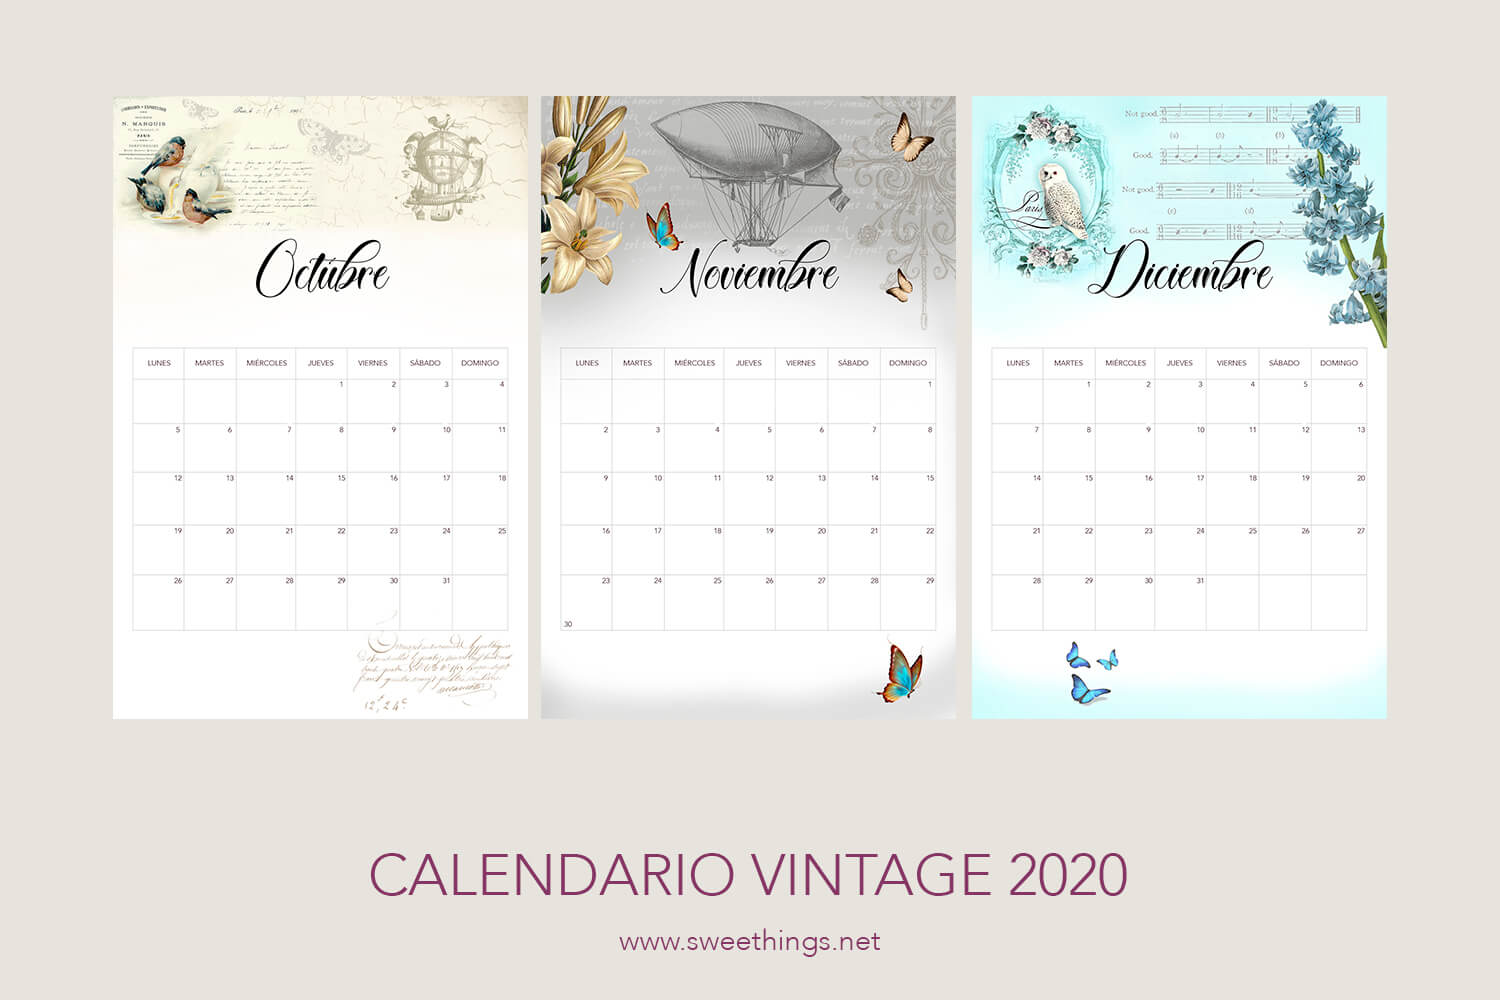 Calendarios 2020 gratis para descargar · Via www.sweethings.net